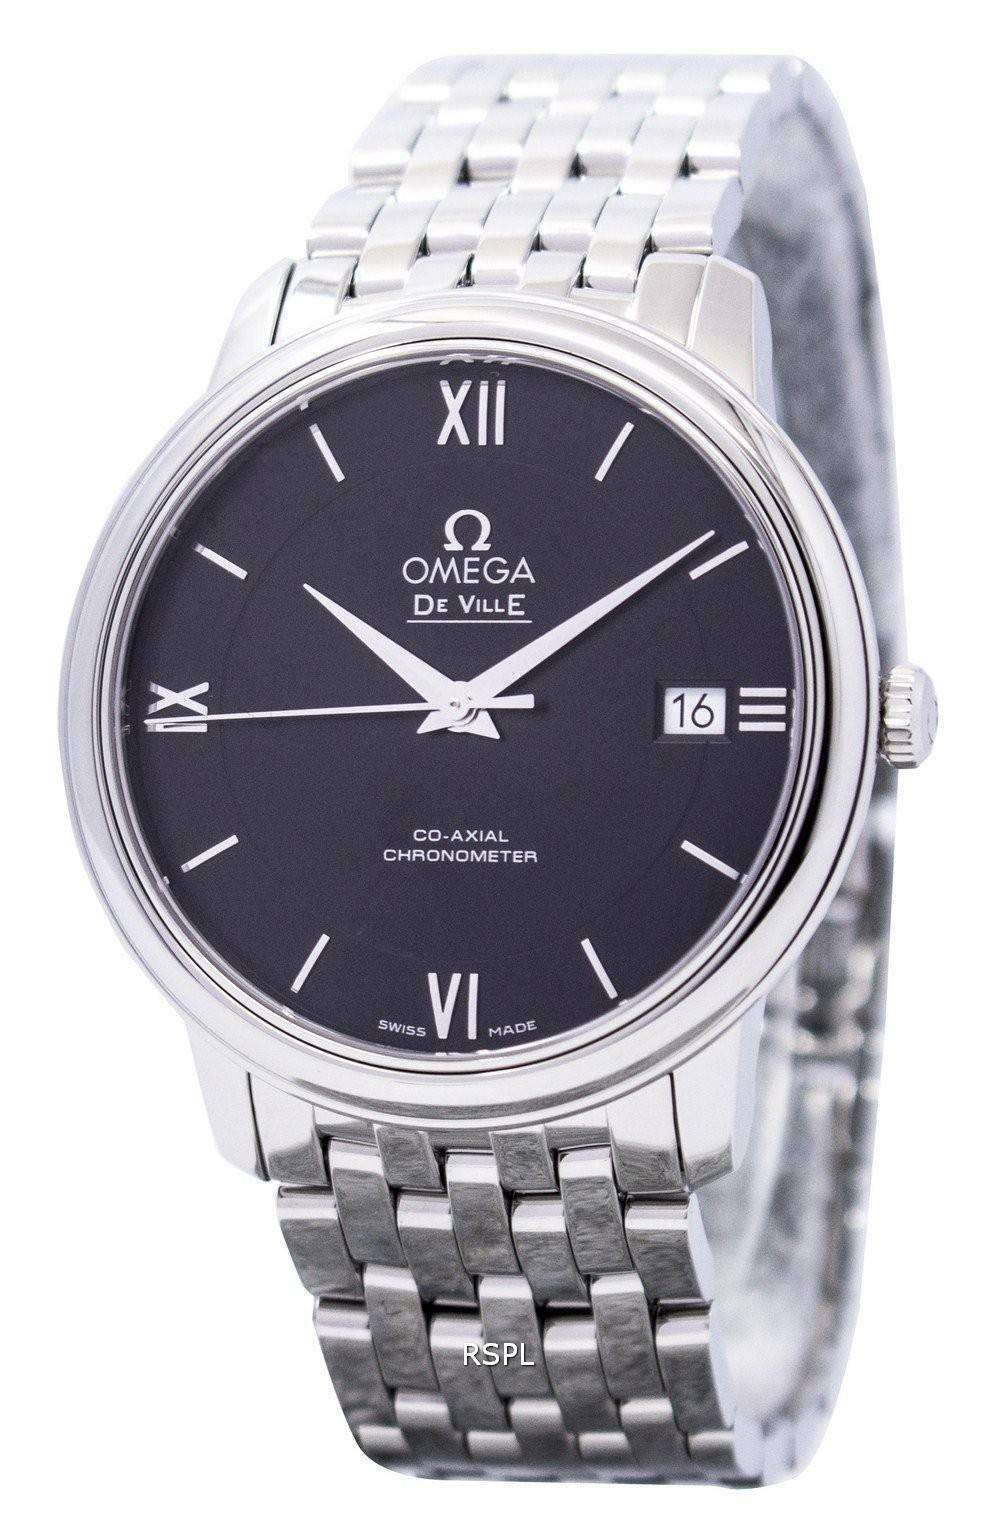 Omega De Ville Prestige Co-Axial Chronometer 424.10.37.20.01.001 Men's Watch